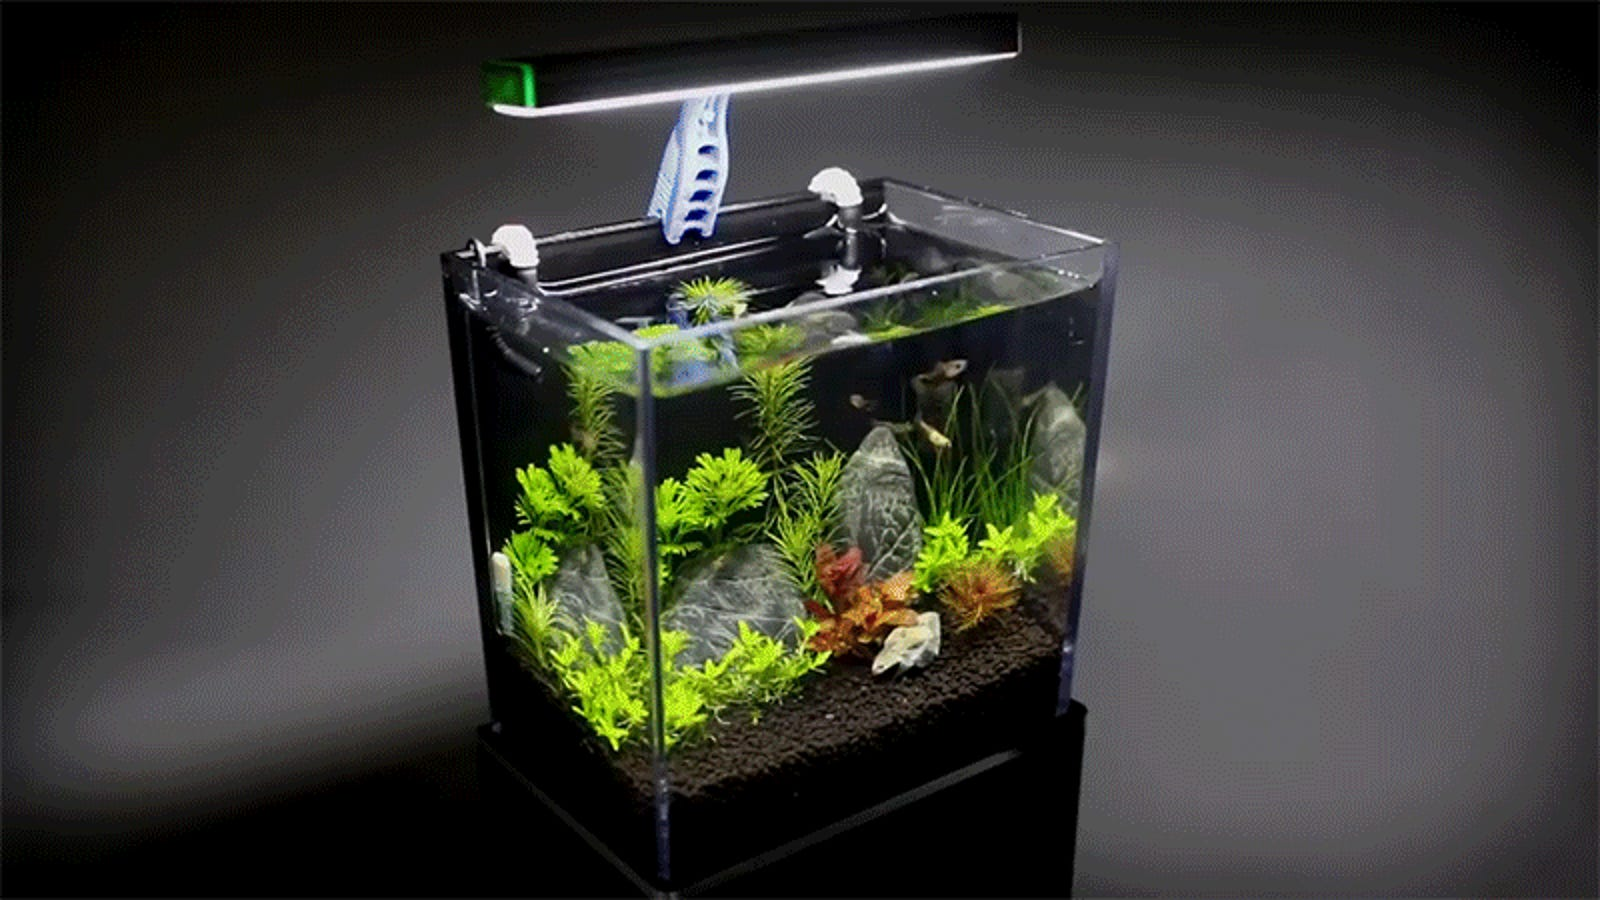 Recycling A Gopro Box Into A Working Aquarium Is The Best